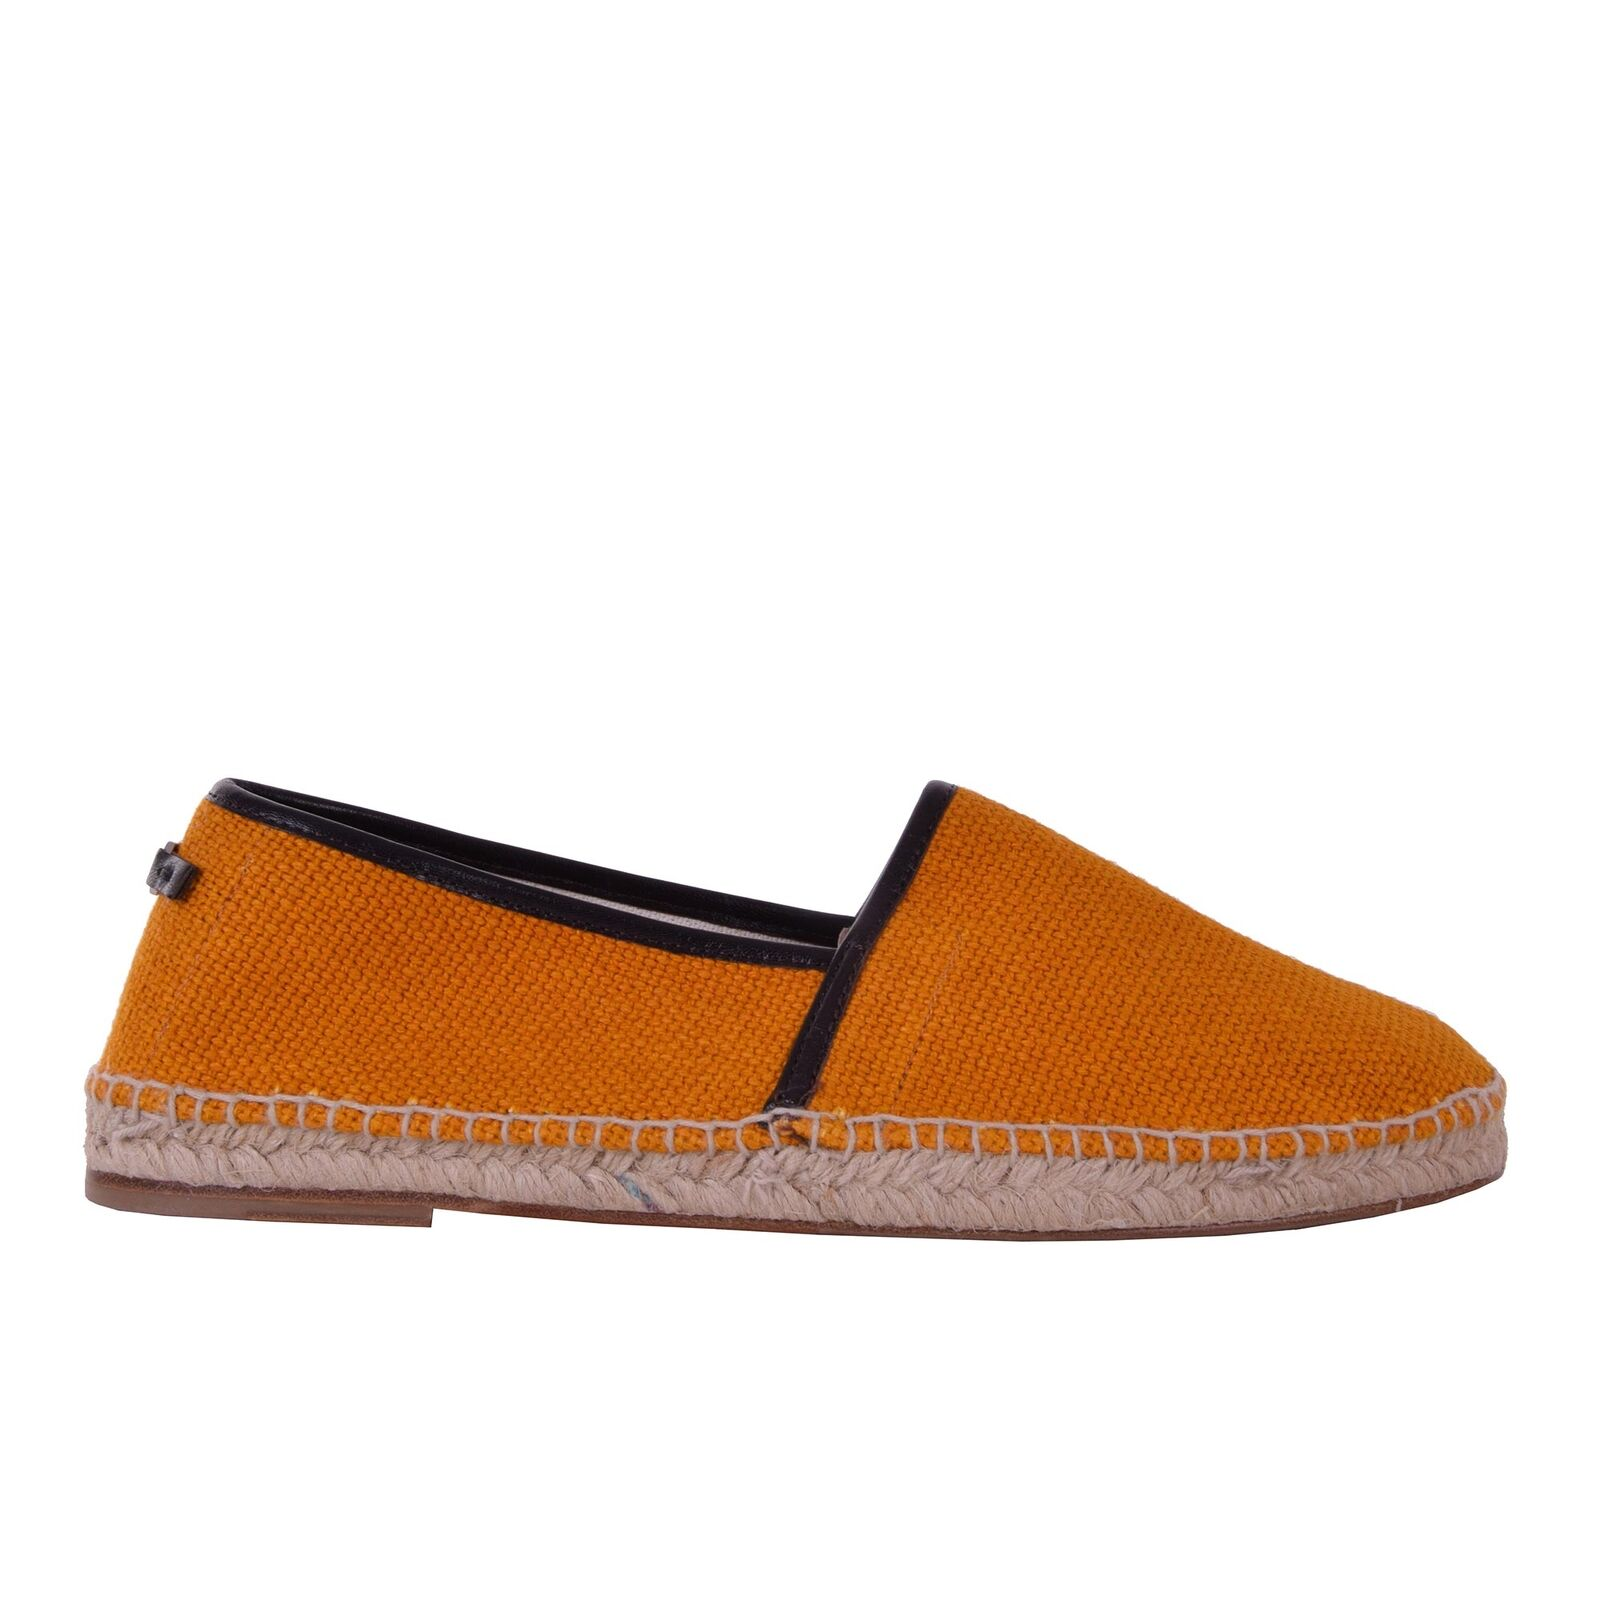 DOLCE & GABBANA Linen Canvas Espadrilles Shoes TREMITI Orange Logo 06237